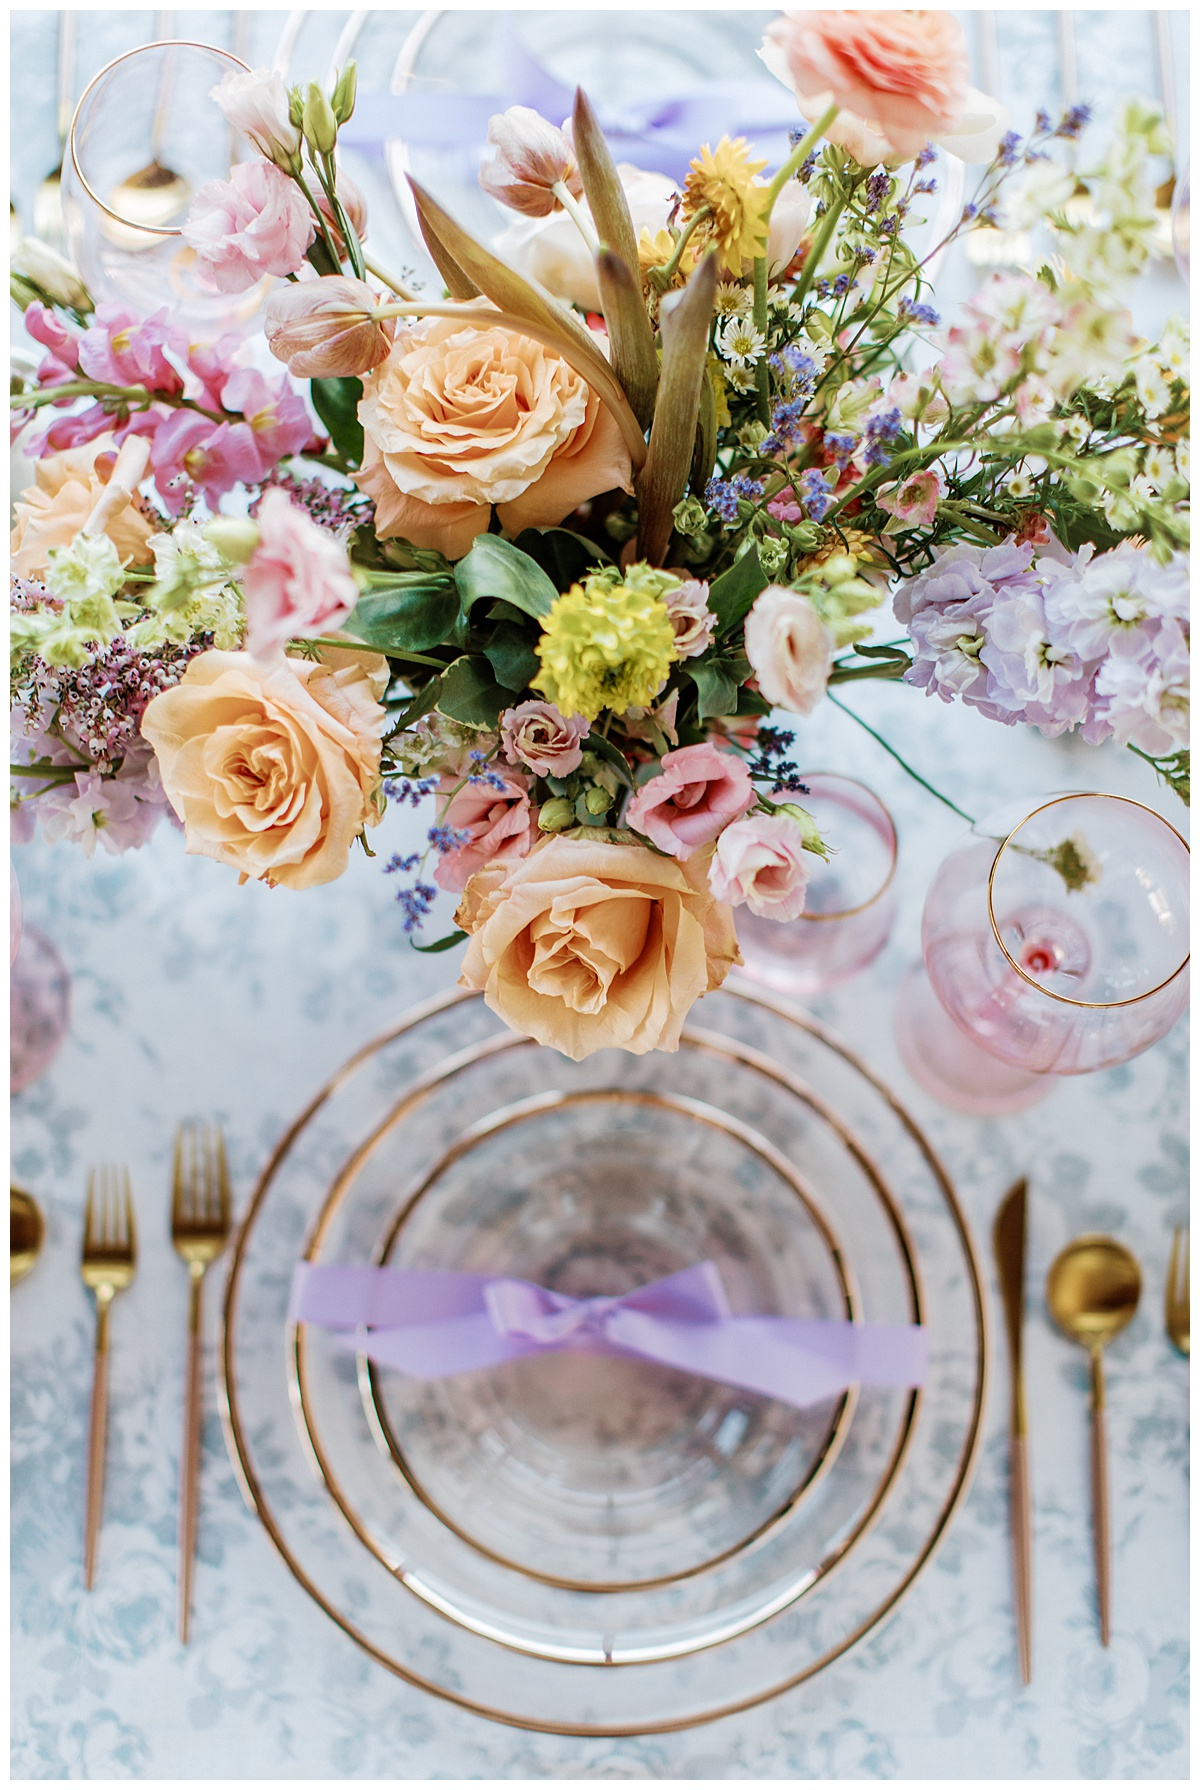 colorful spring flowers and dining table